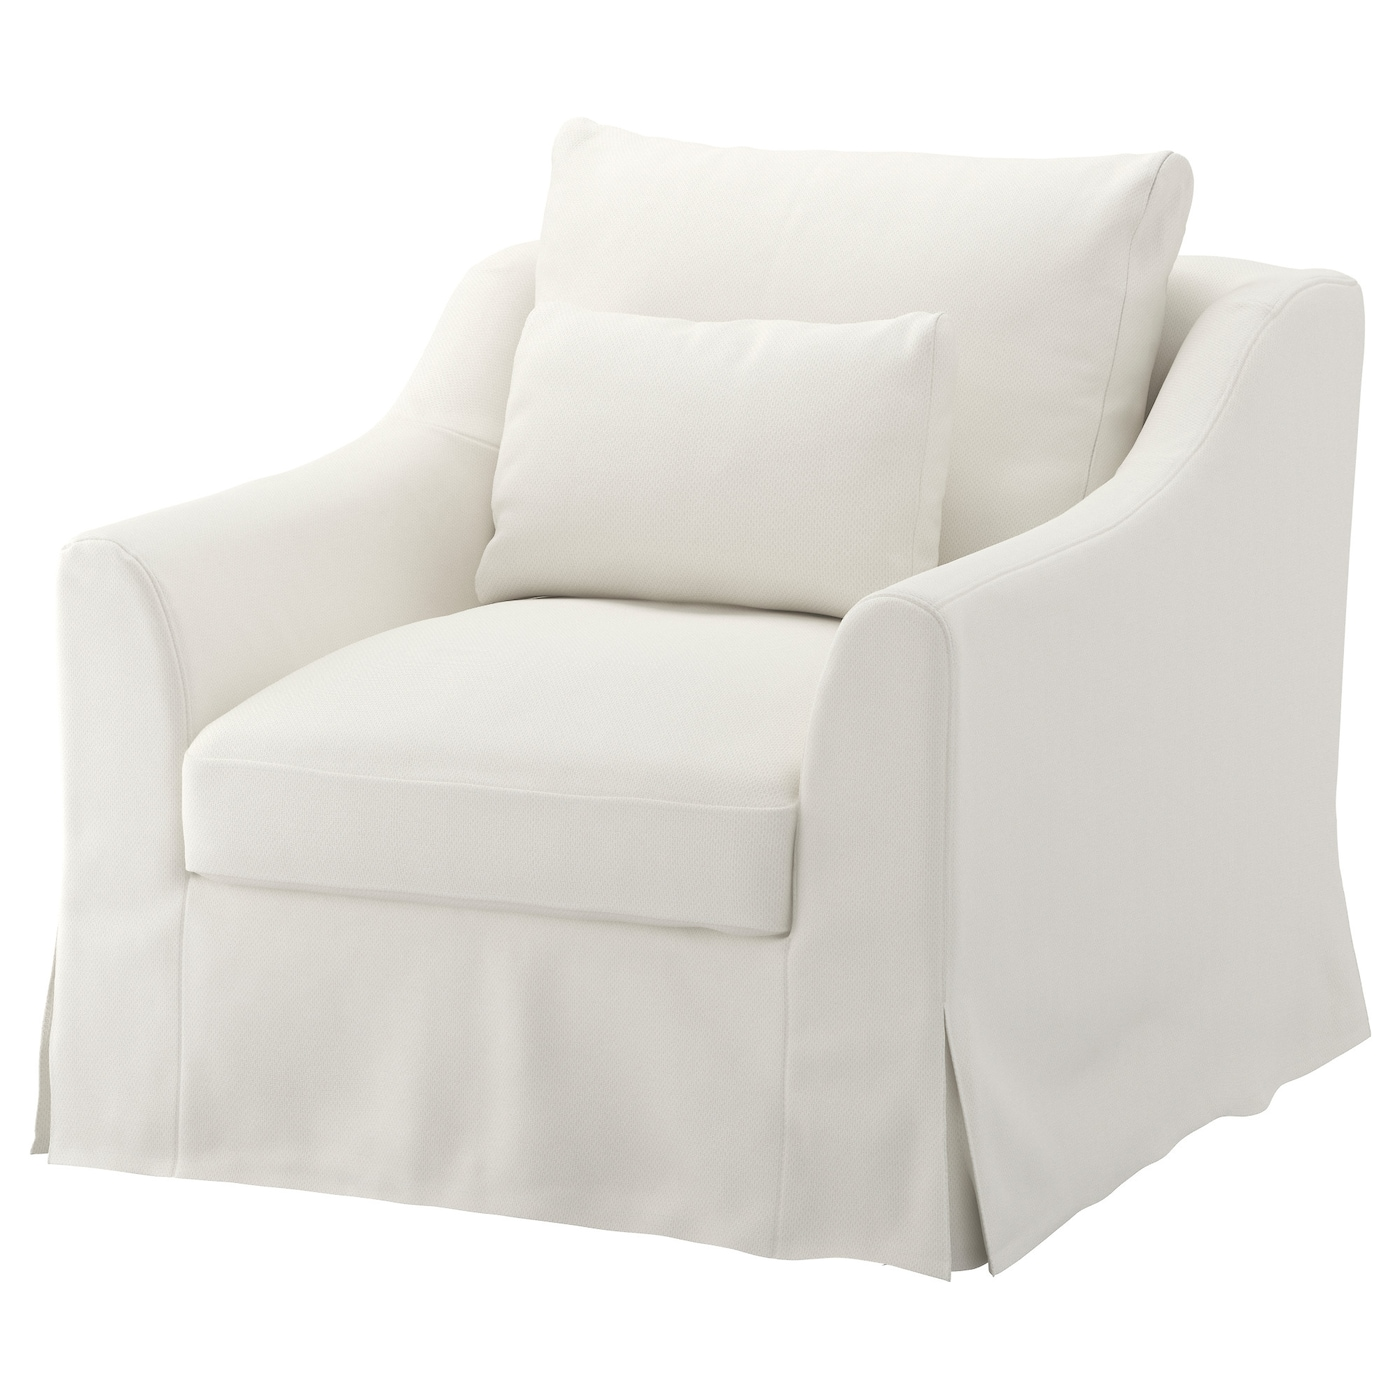 f rl v housse pour fauteuil flodafors blanc ikea. Black Bedroom Furniture Sets. Home Design Ideas